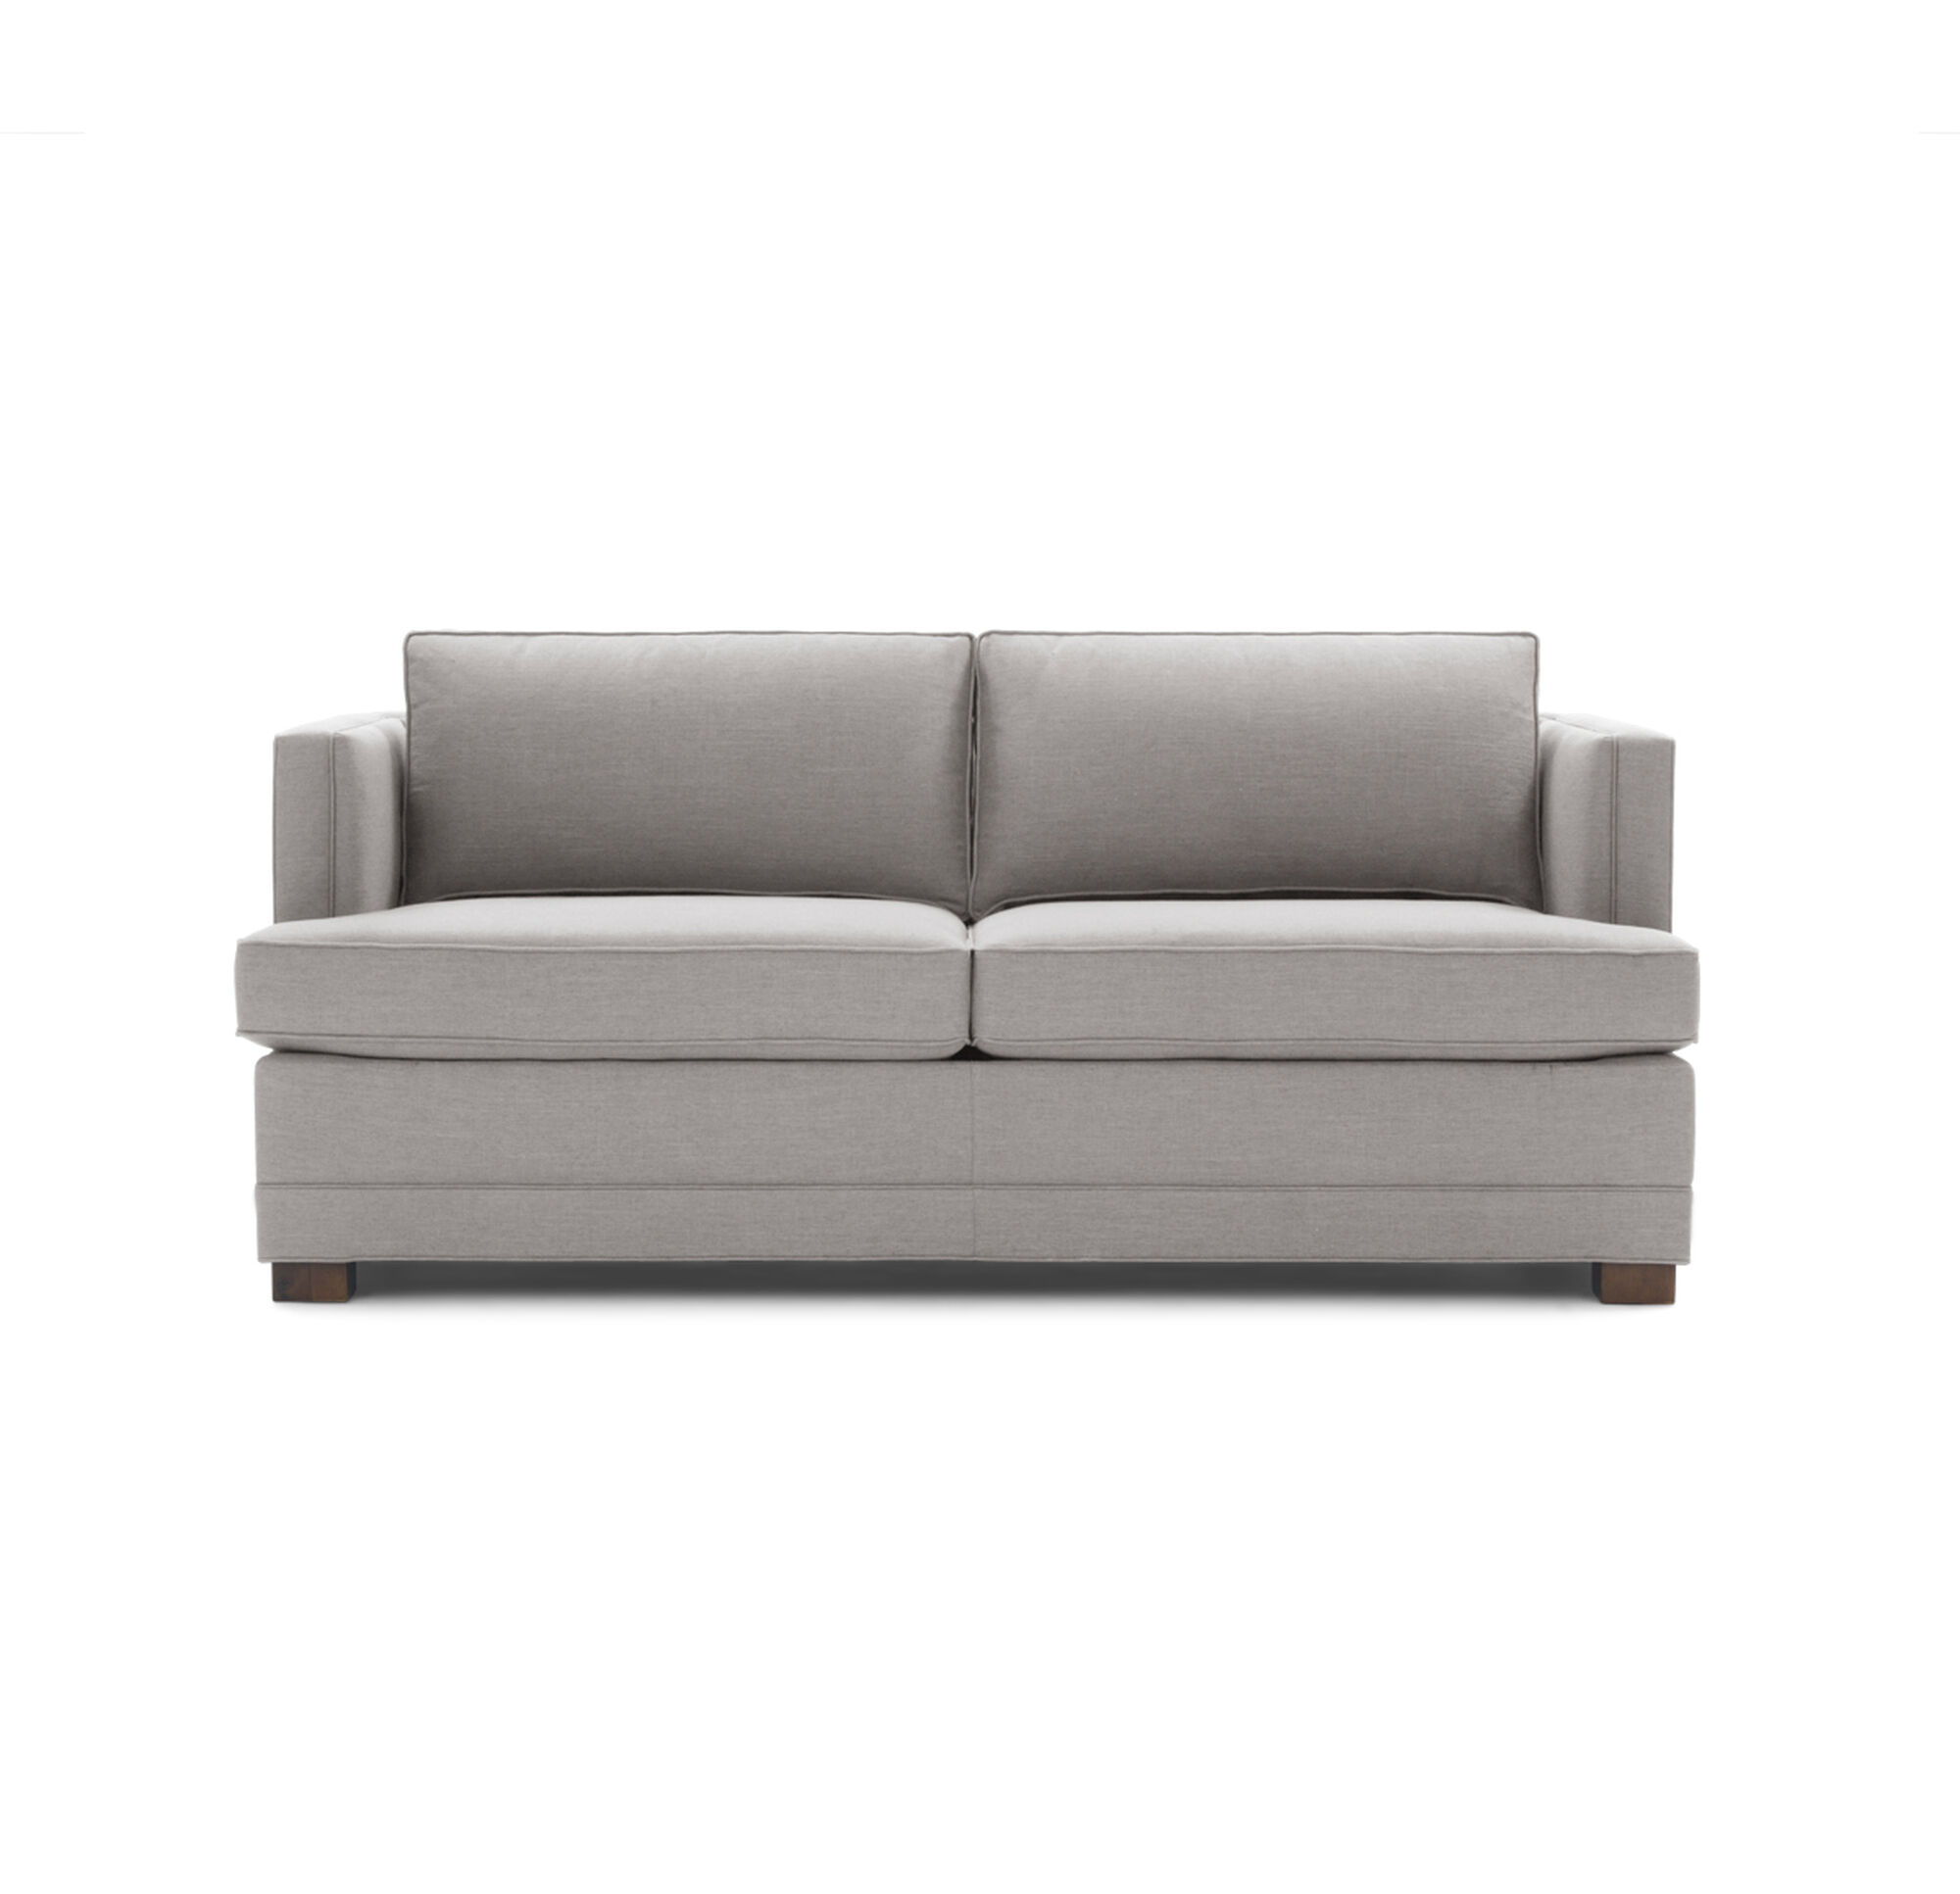 Keaton Queen Sleeper Sofa Mitchell